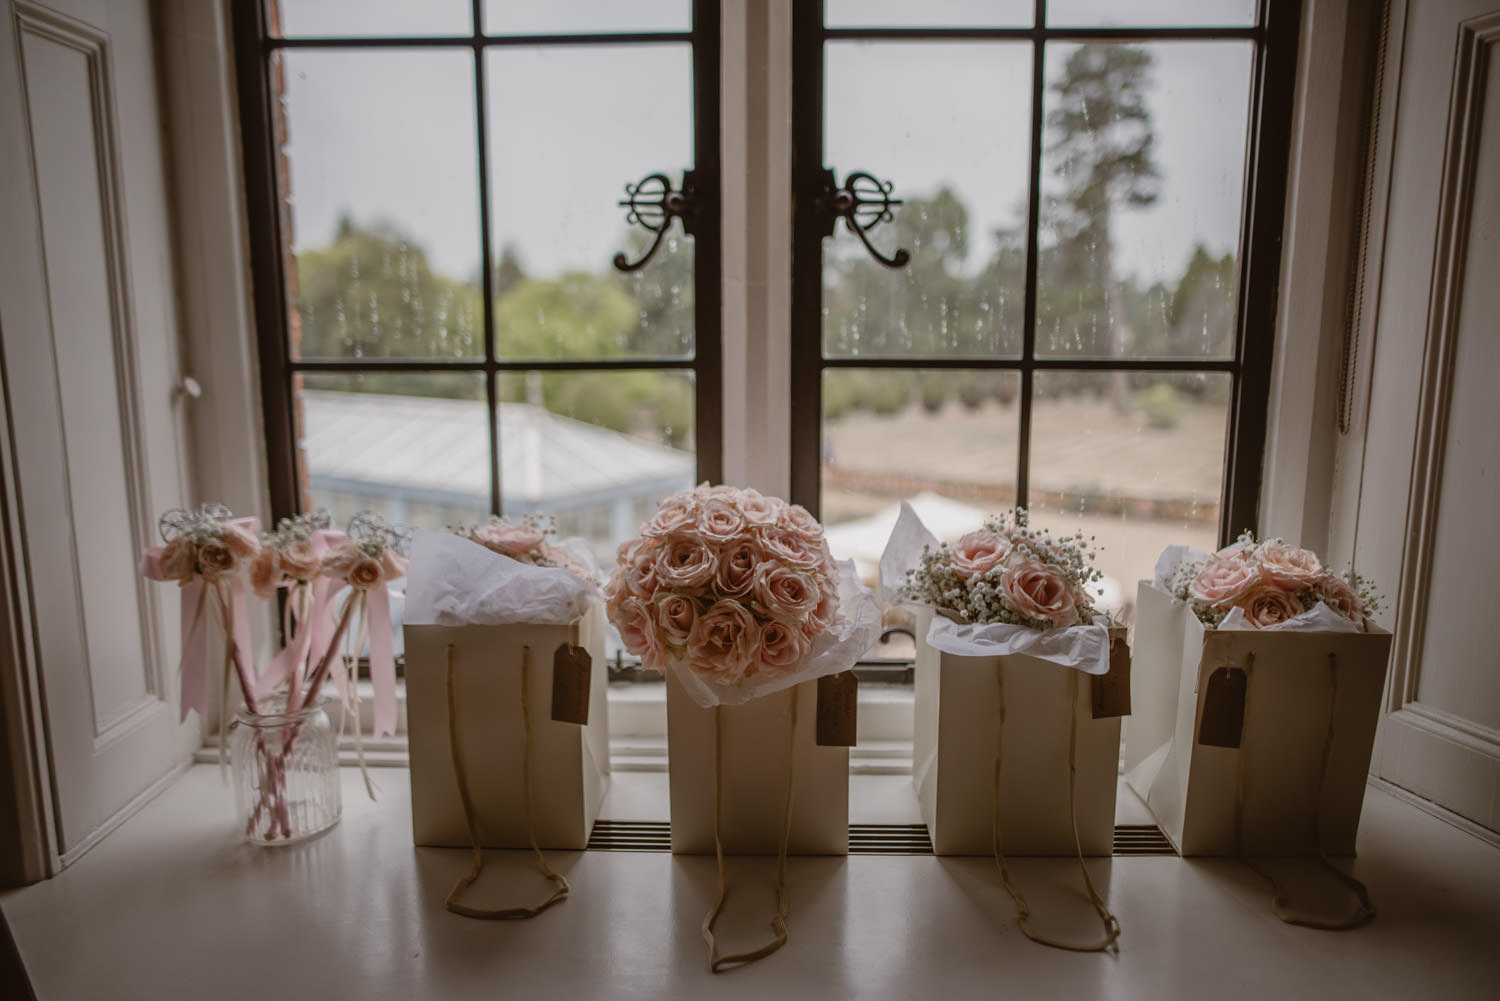 Wedding flowers in a window in The Elvetham, Hampshire